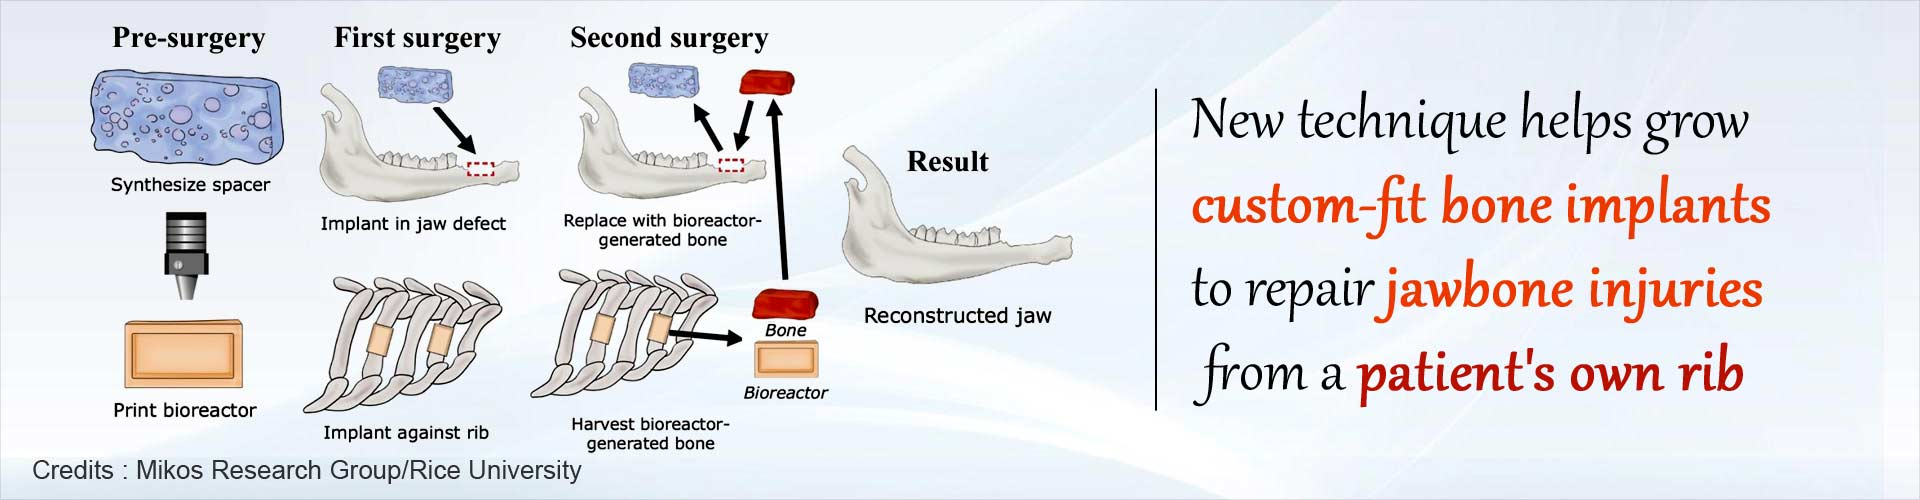 Your Own Rib can Help Reconstruct Your Jawbone: Here's How